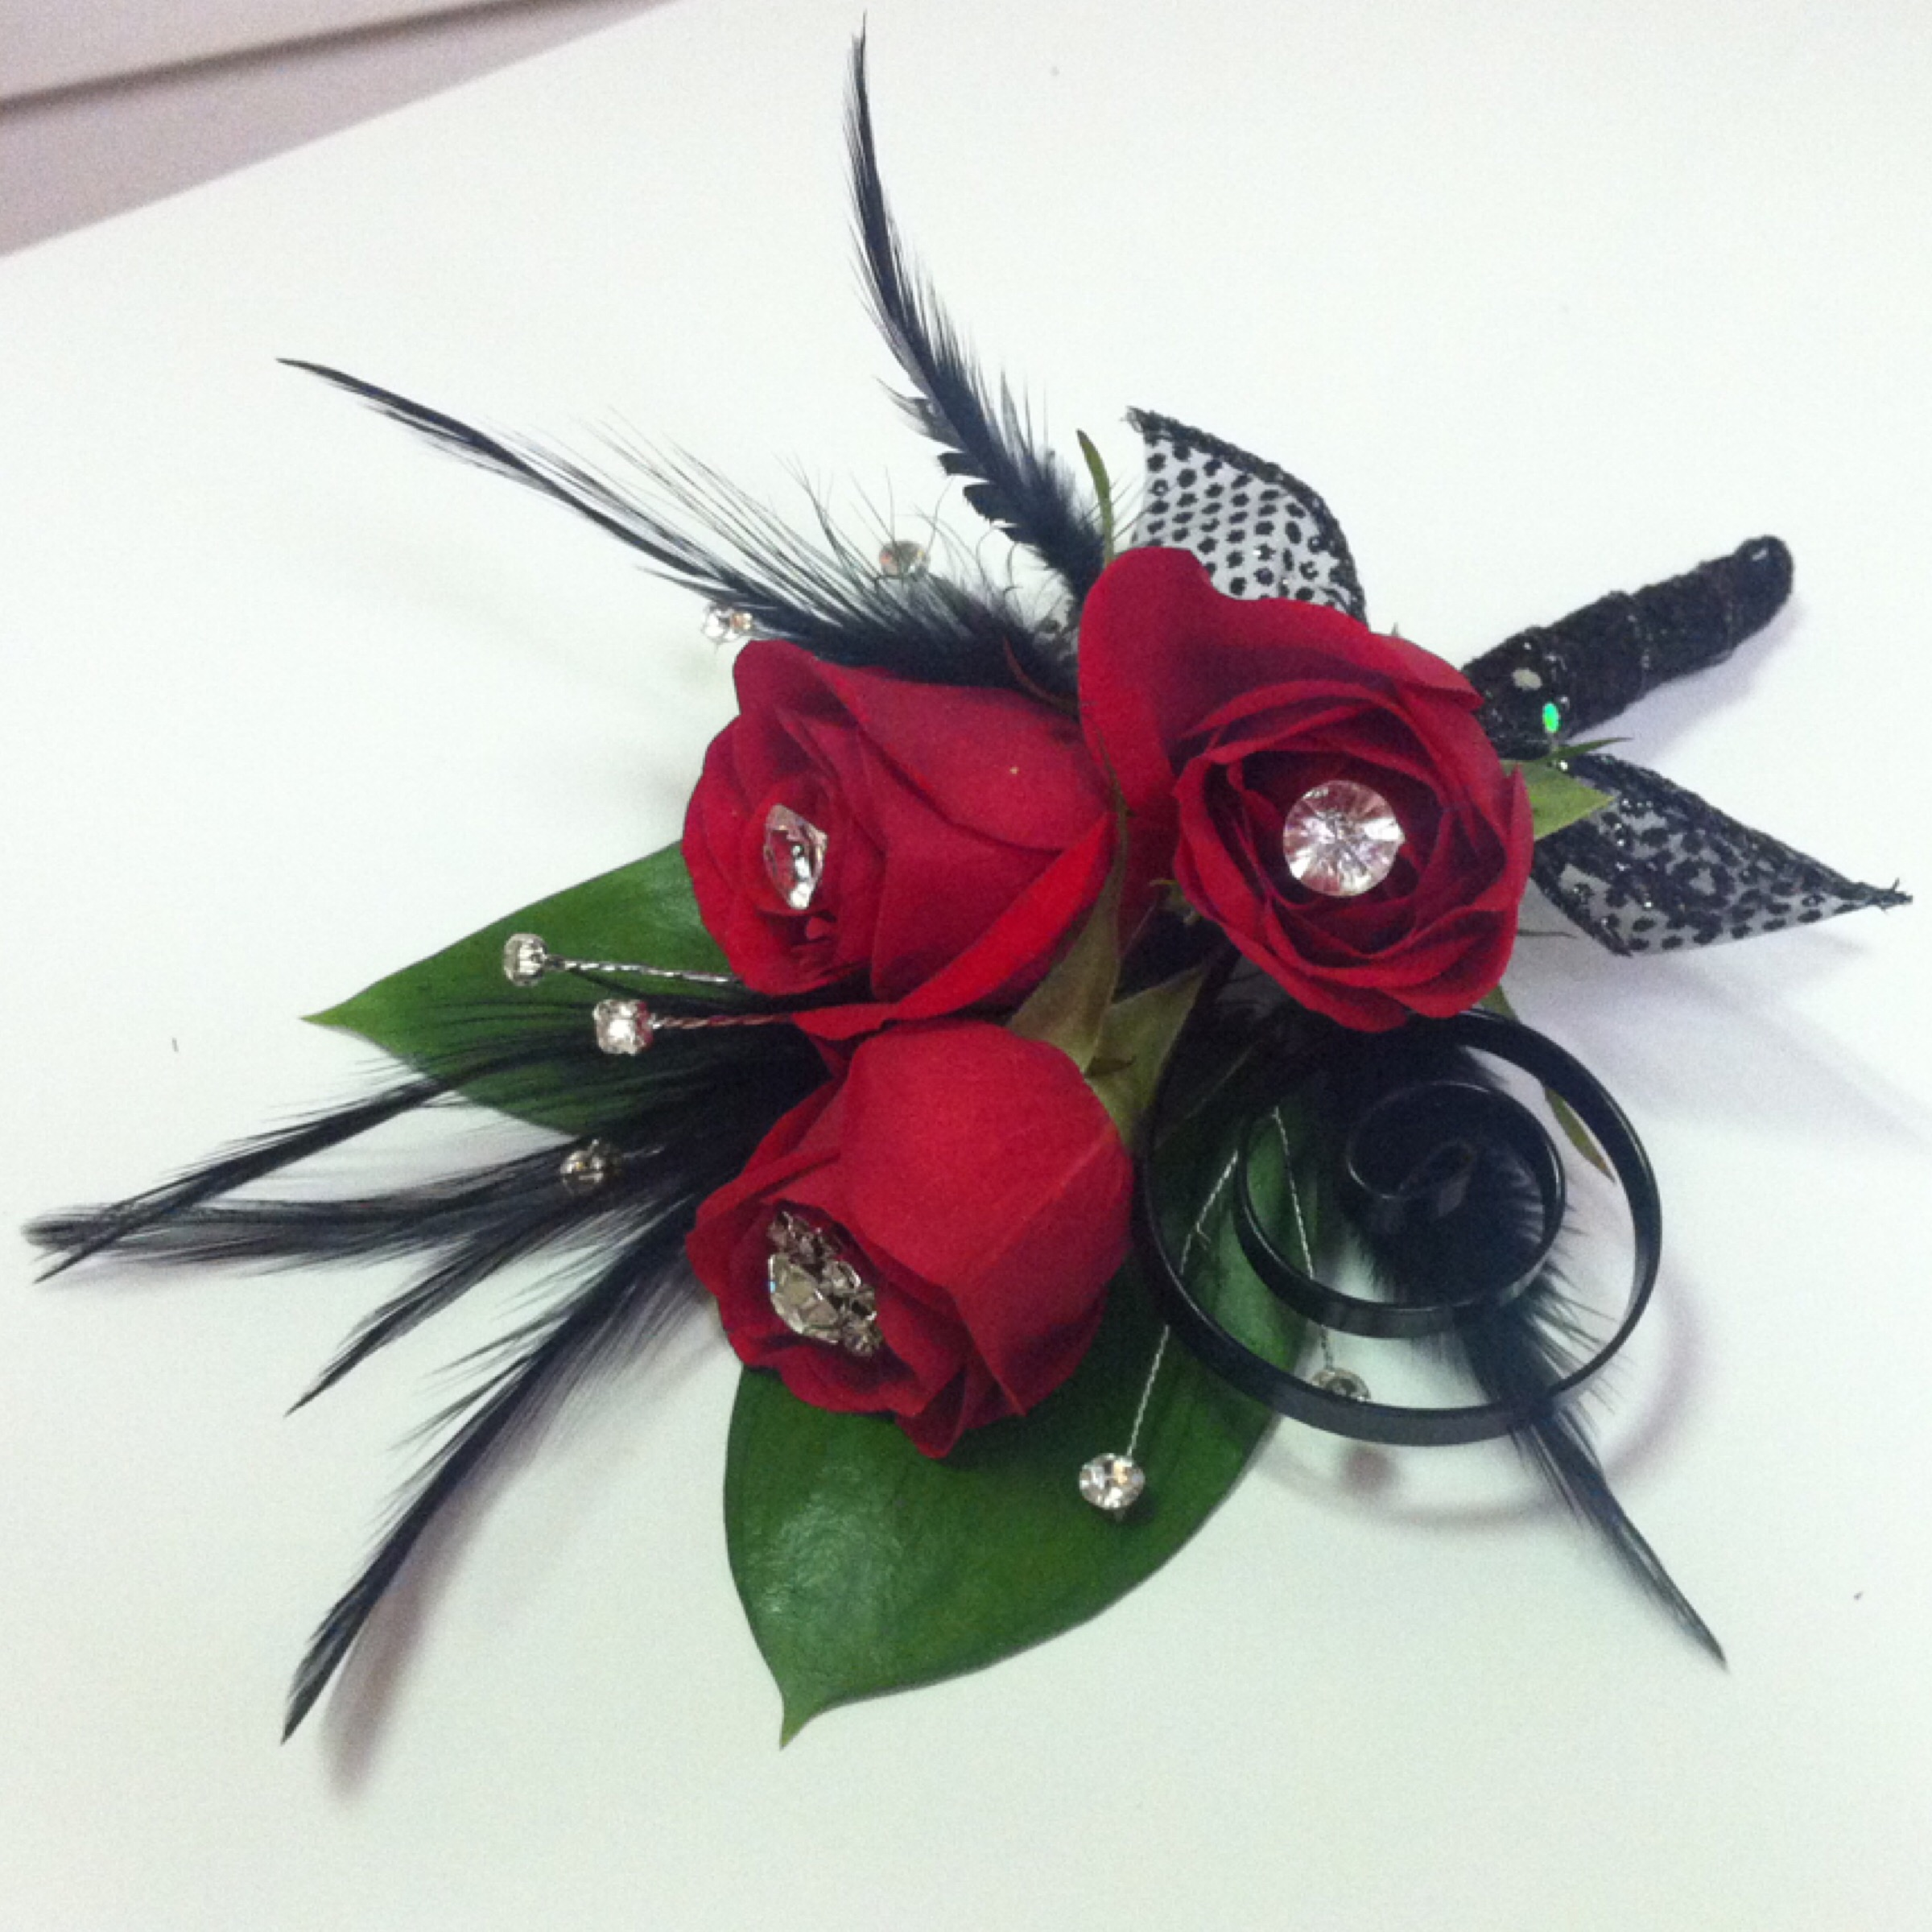 Premium Boutonniere (14) with Extra Jewels and Feathers and Specialty Embellishments (6) $20